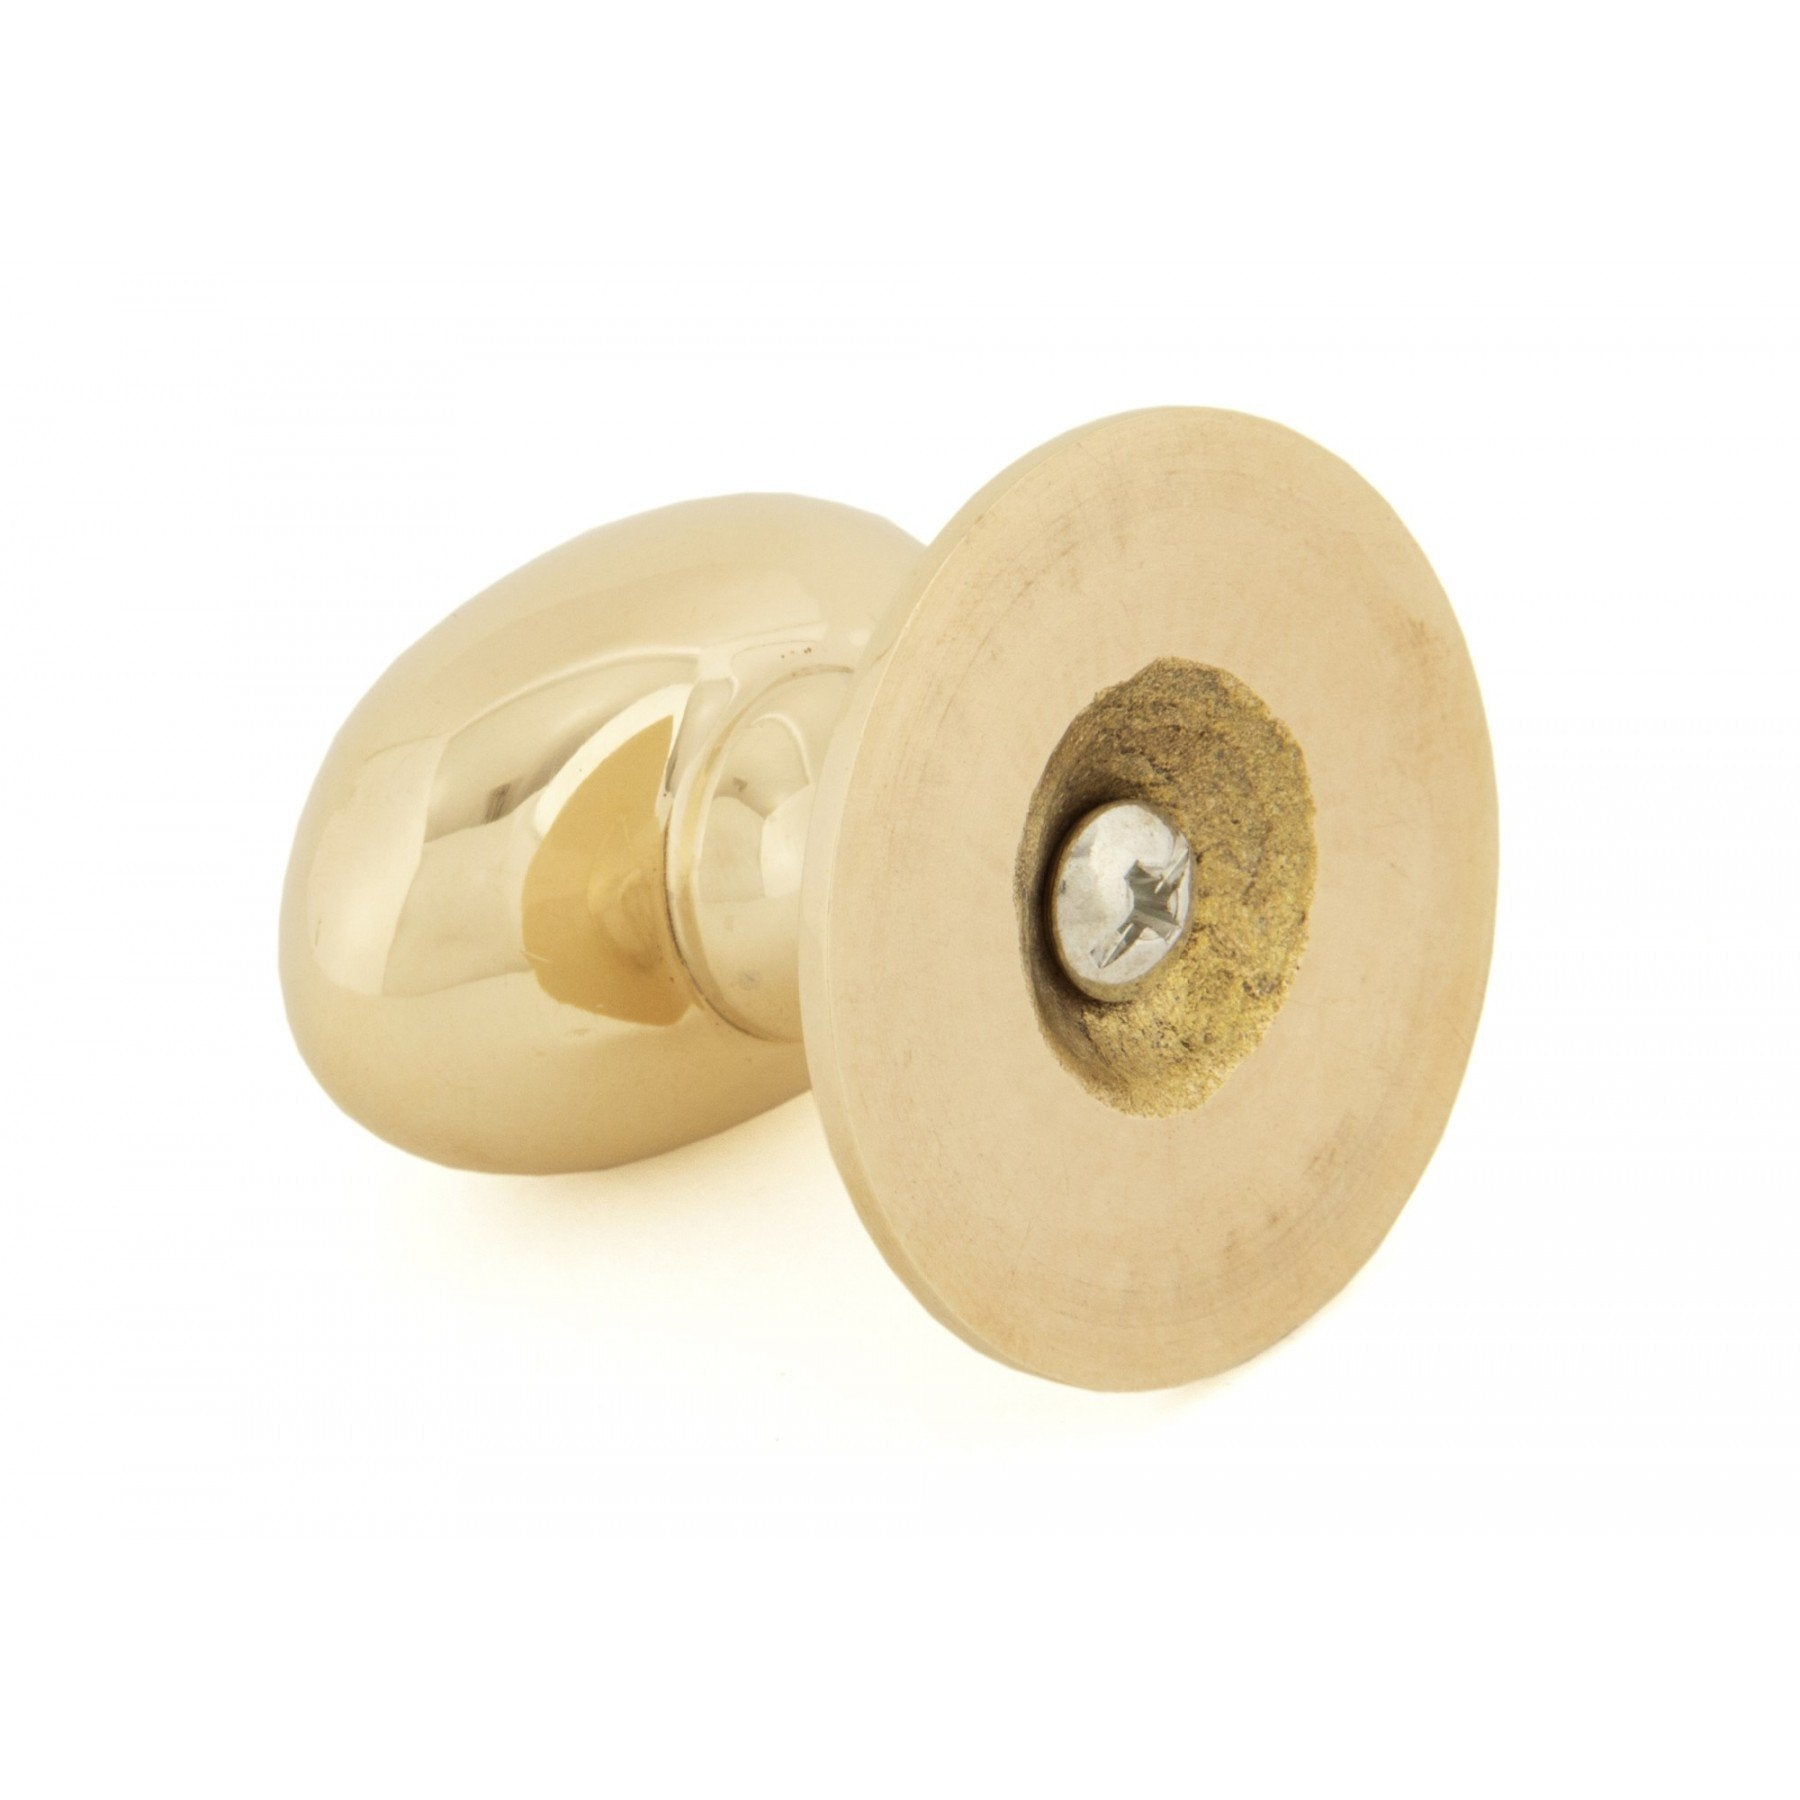 From the Anvil Polished Brass Oval Cabinet Knob - Large